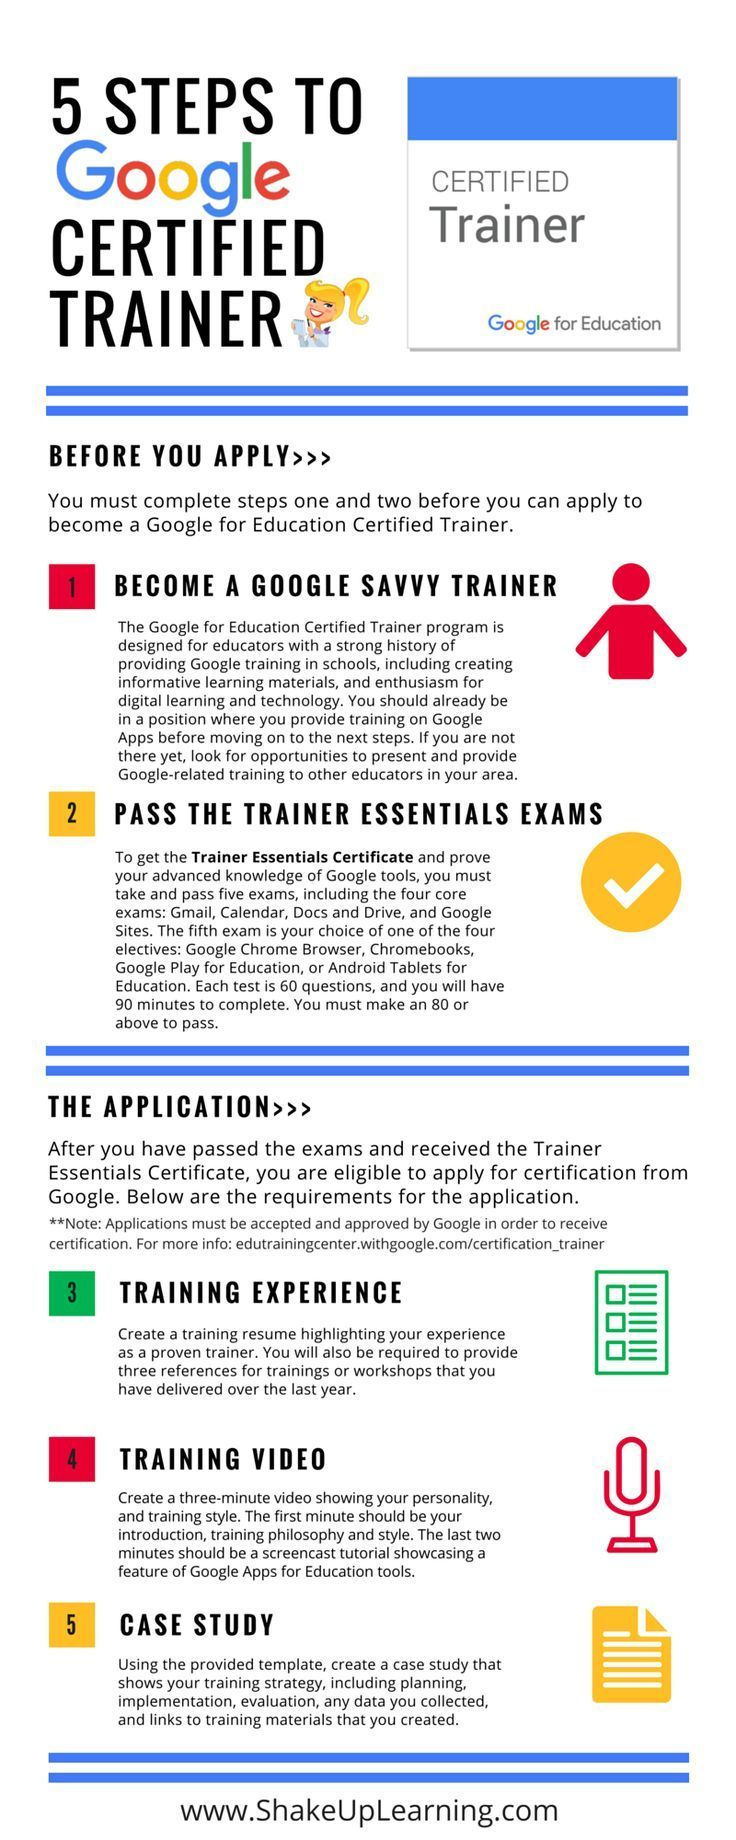 How to Become a Google Certified Trainer - 5 Steps [infographic]! Who wants to be a Google Certified Trainer? I can help. This infographic is just the start of some special resources I have in store. I'm sharing all my tips and tricks to help more educators become Google Certified Trainers and leaders on their campuses. Transform your learning and your career! Be sure you join my special email list by filling out the Google form…